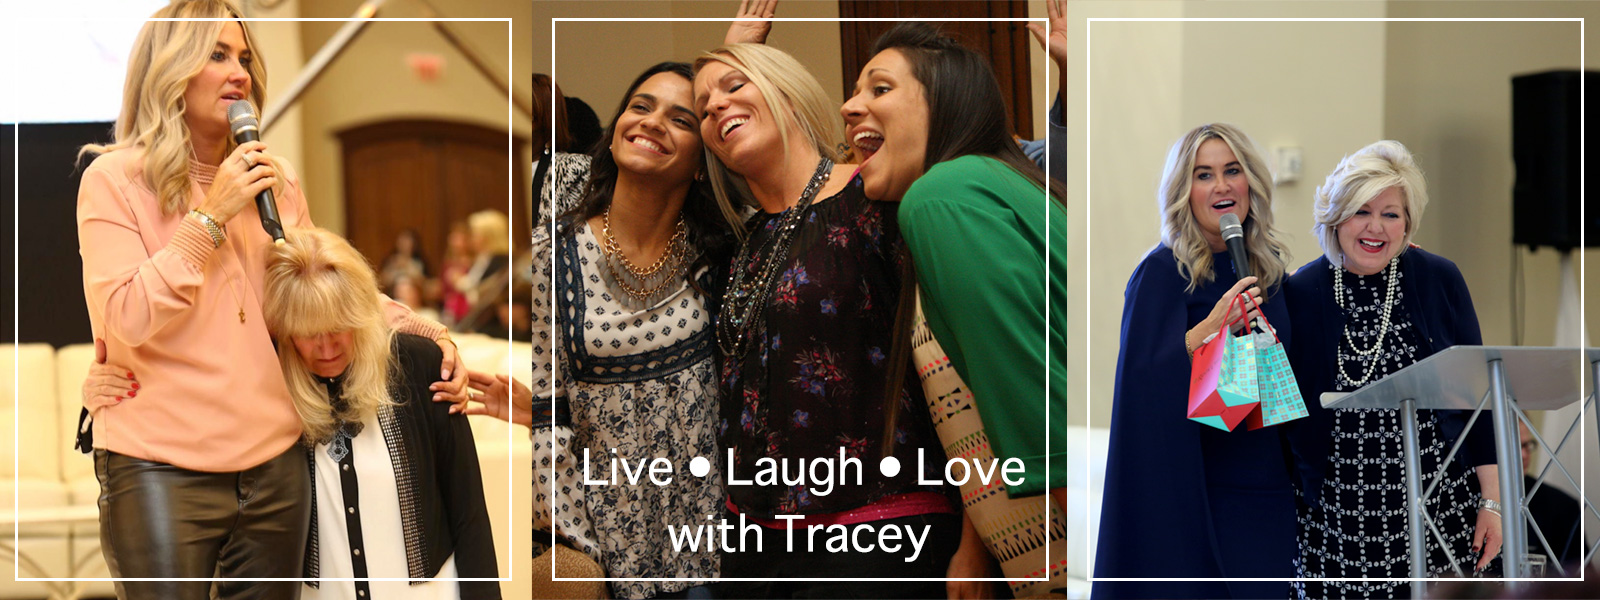 Live Laugh and Love with Tracey